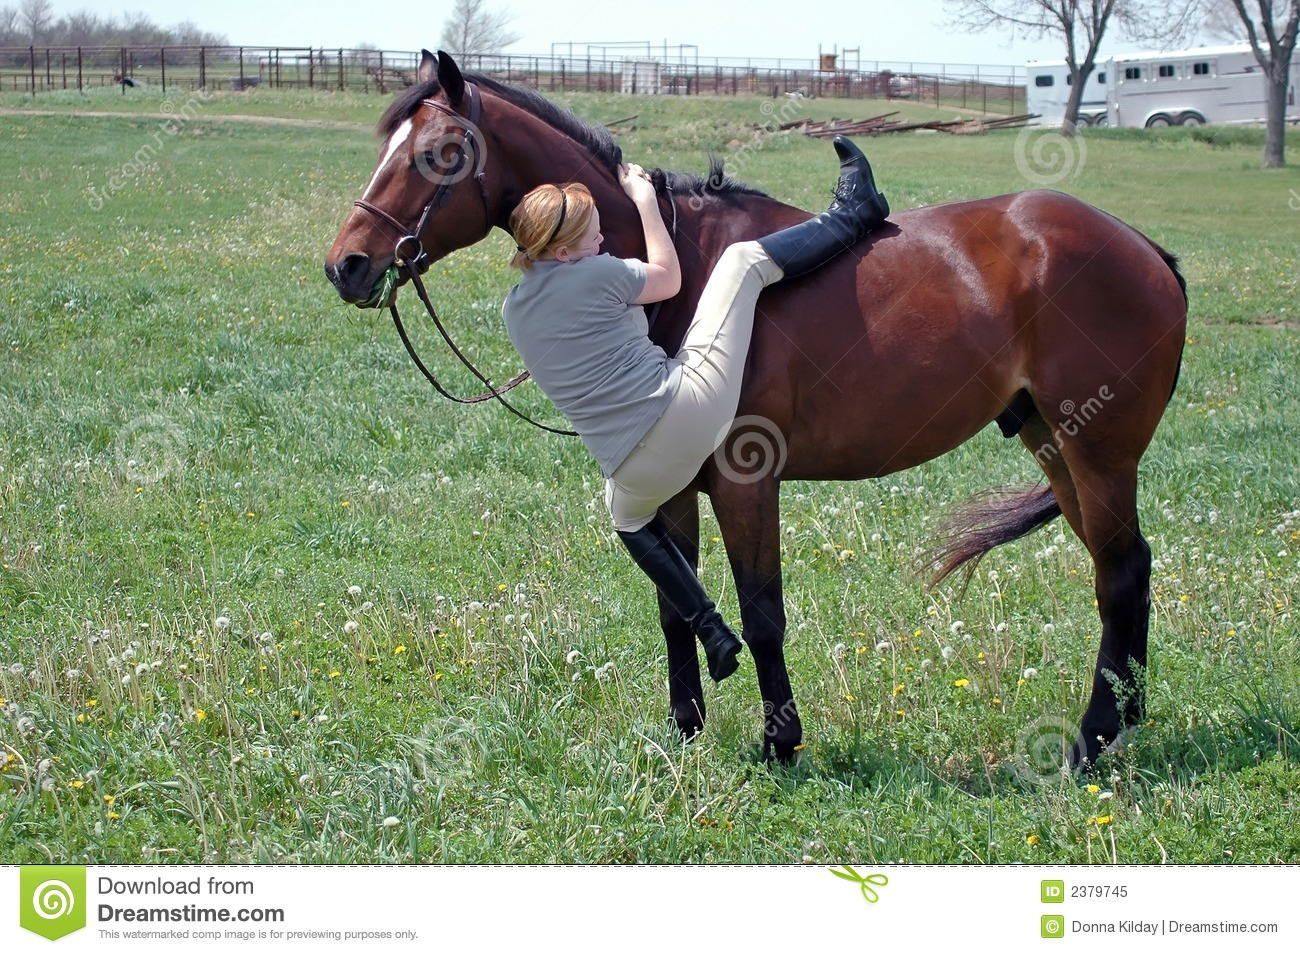 Mounting A Horse Royalty Free Stock Photo - Image: 2379745